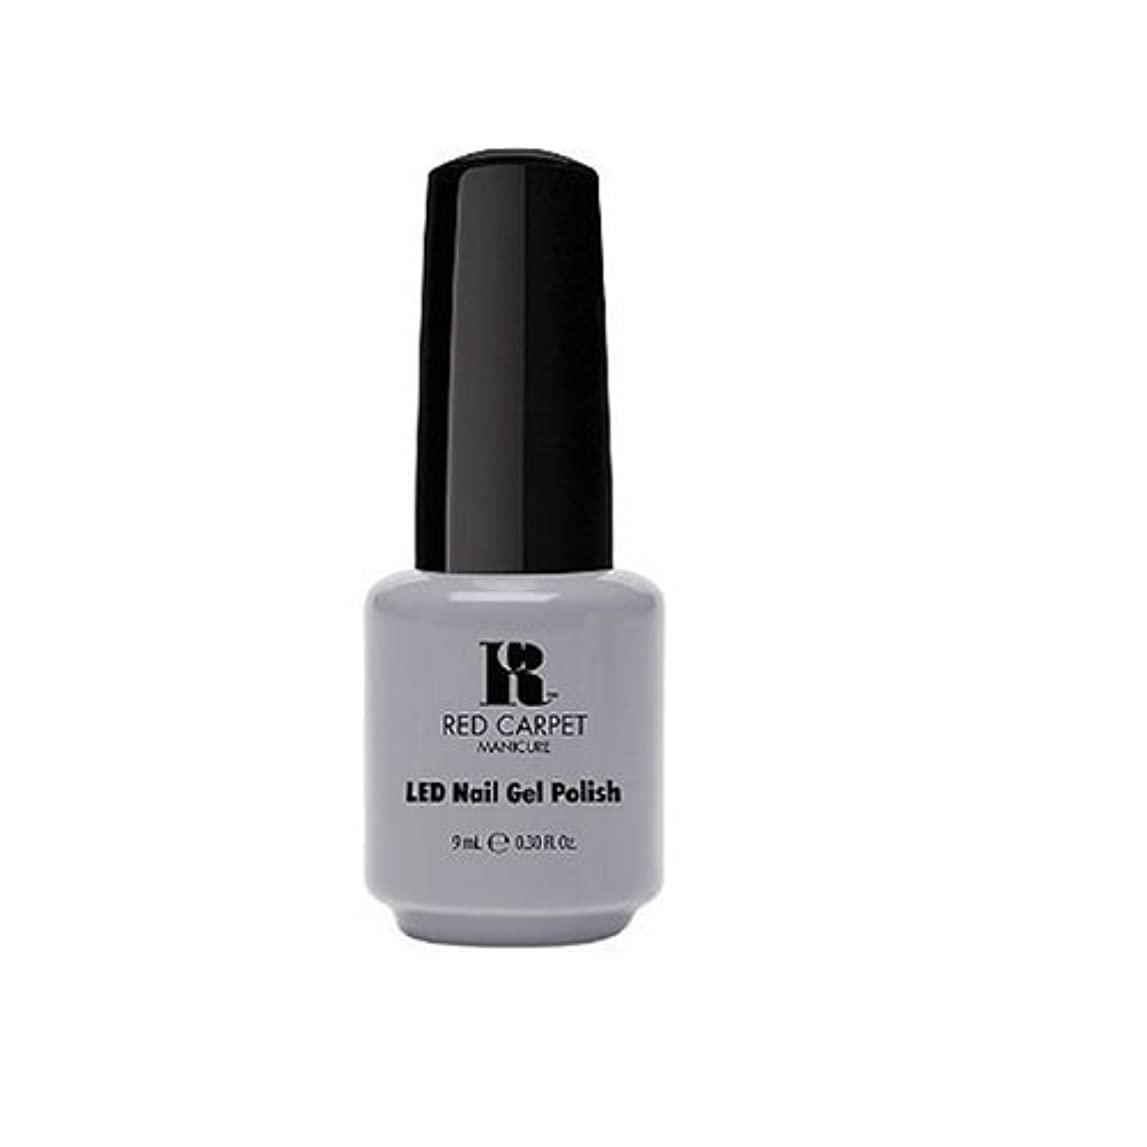 感染するブルーベルビーズRed Carpet Manicure - LED Nail Gel Polish - #nofilter - 0.3oz / 9ml